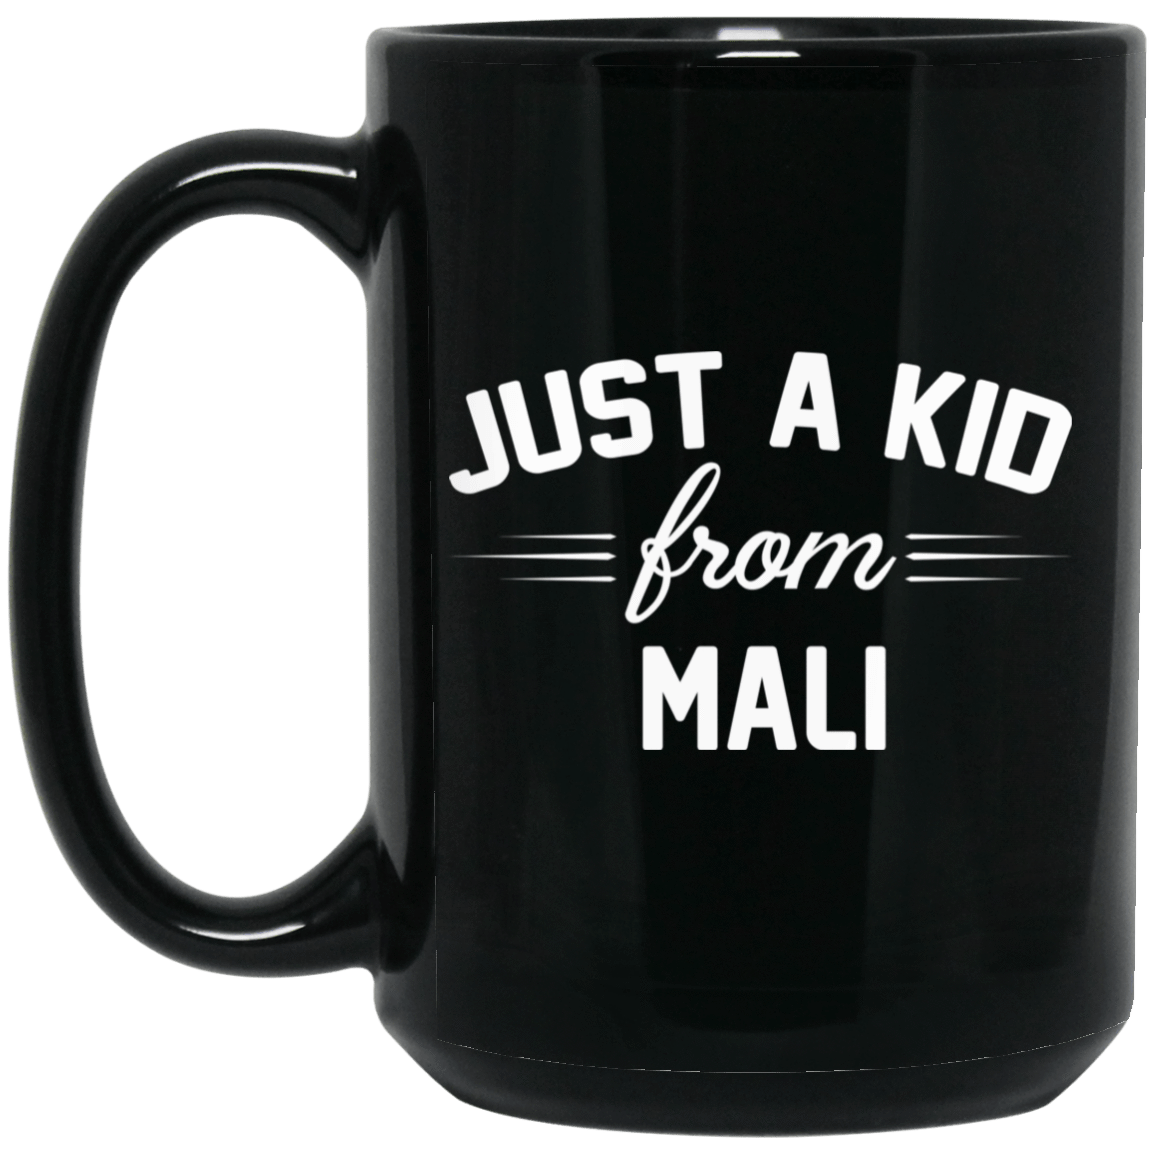 Just A Kid Store | Mali Mug 1066-10182-72111194-49311 - Tee Ript